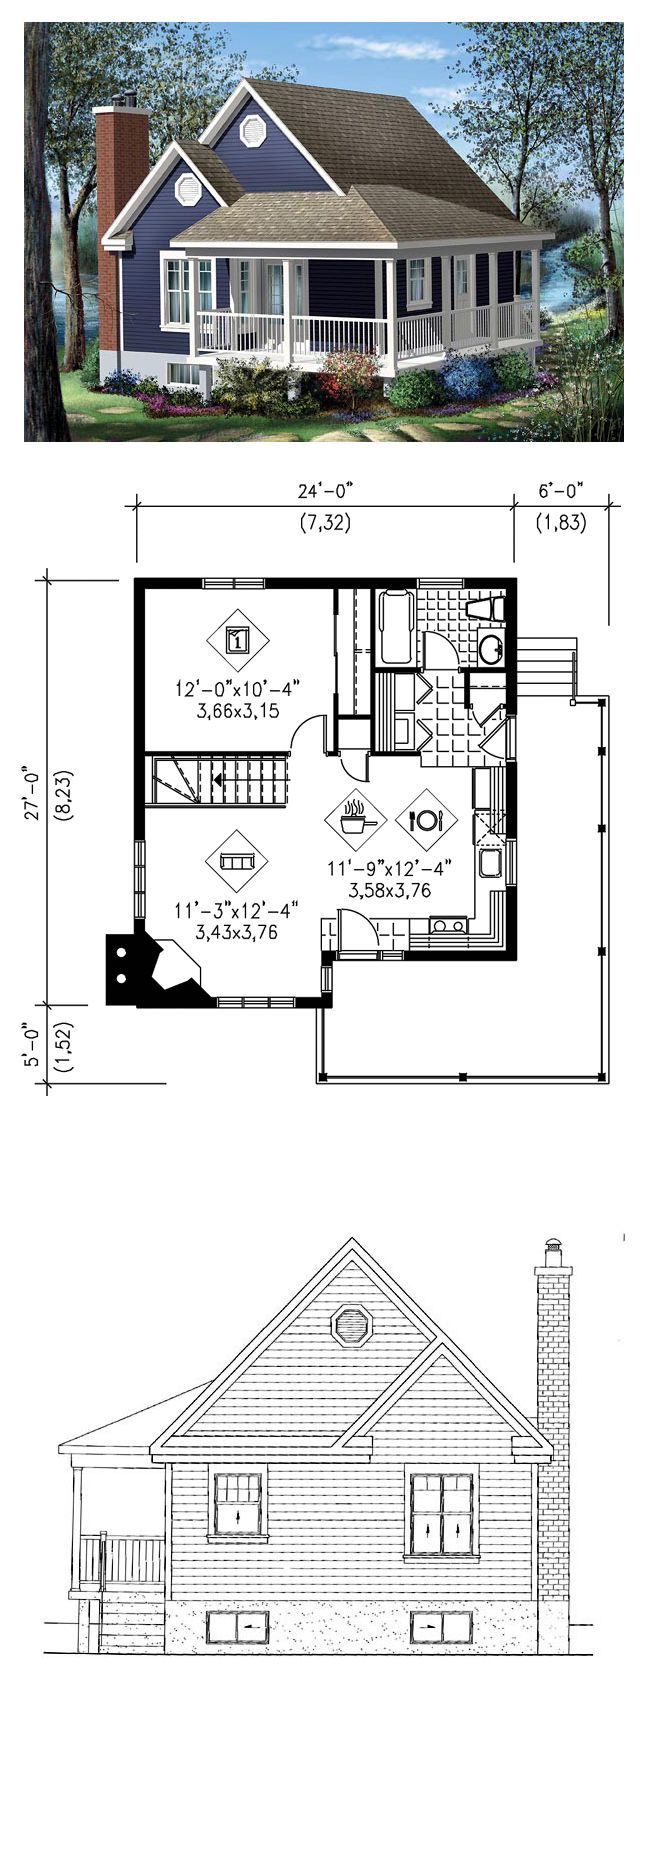 De 25 bedste id er til miniatureboliger p pinterest for Coastal living house plans for narrow lots